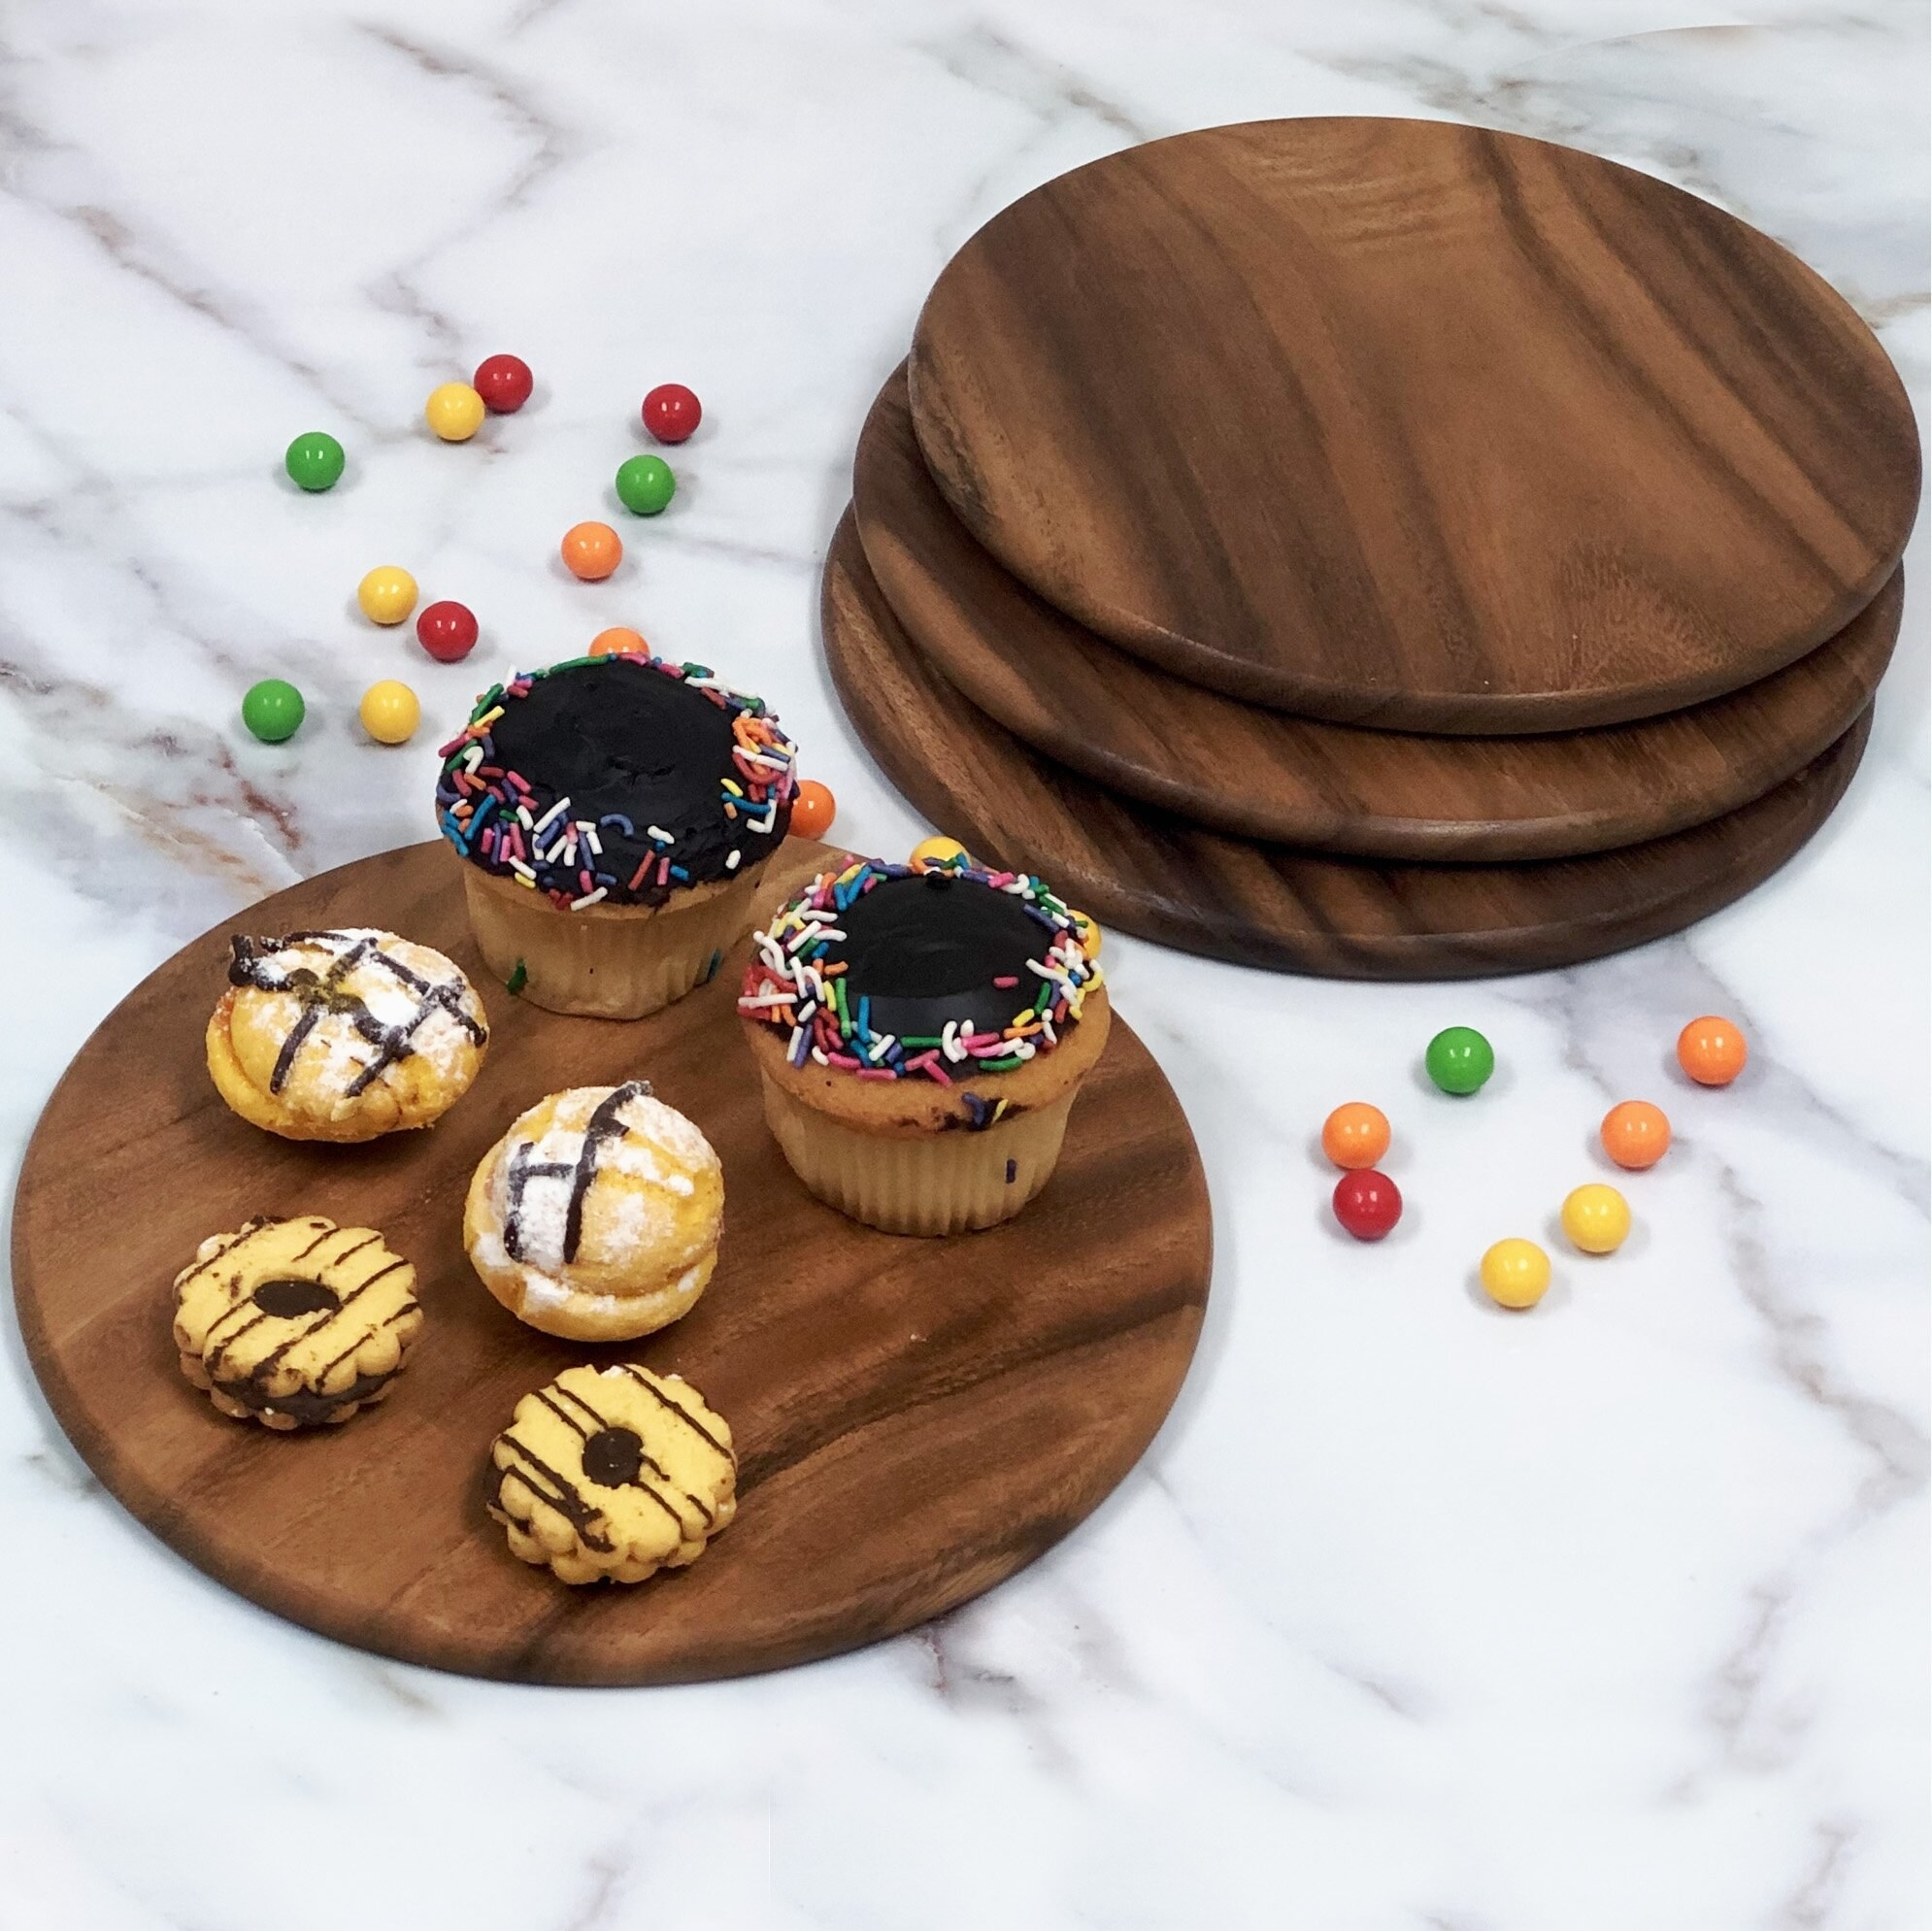 The serving trays with a variety of desserts on top